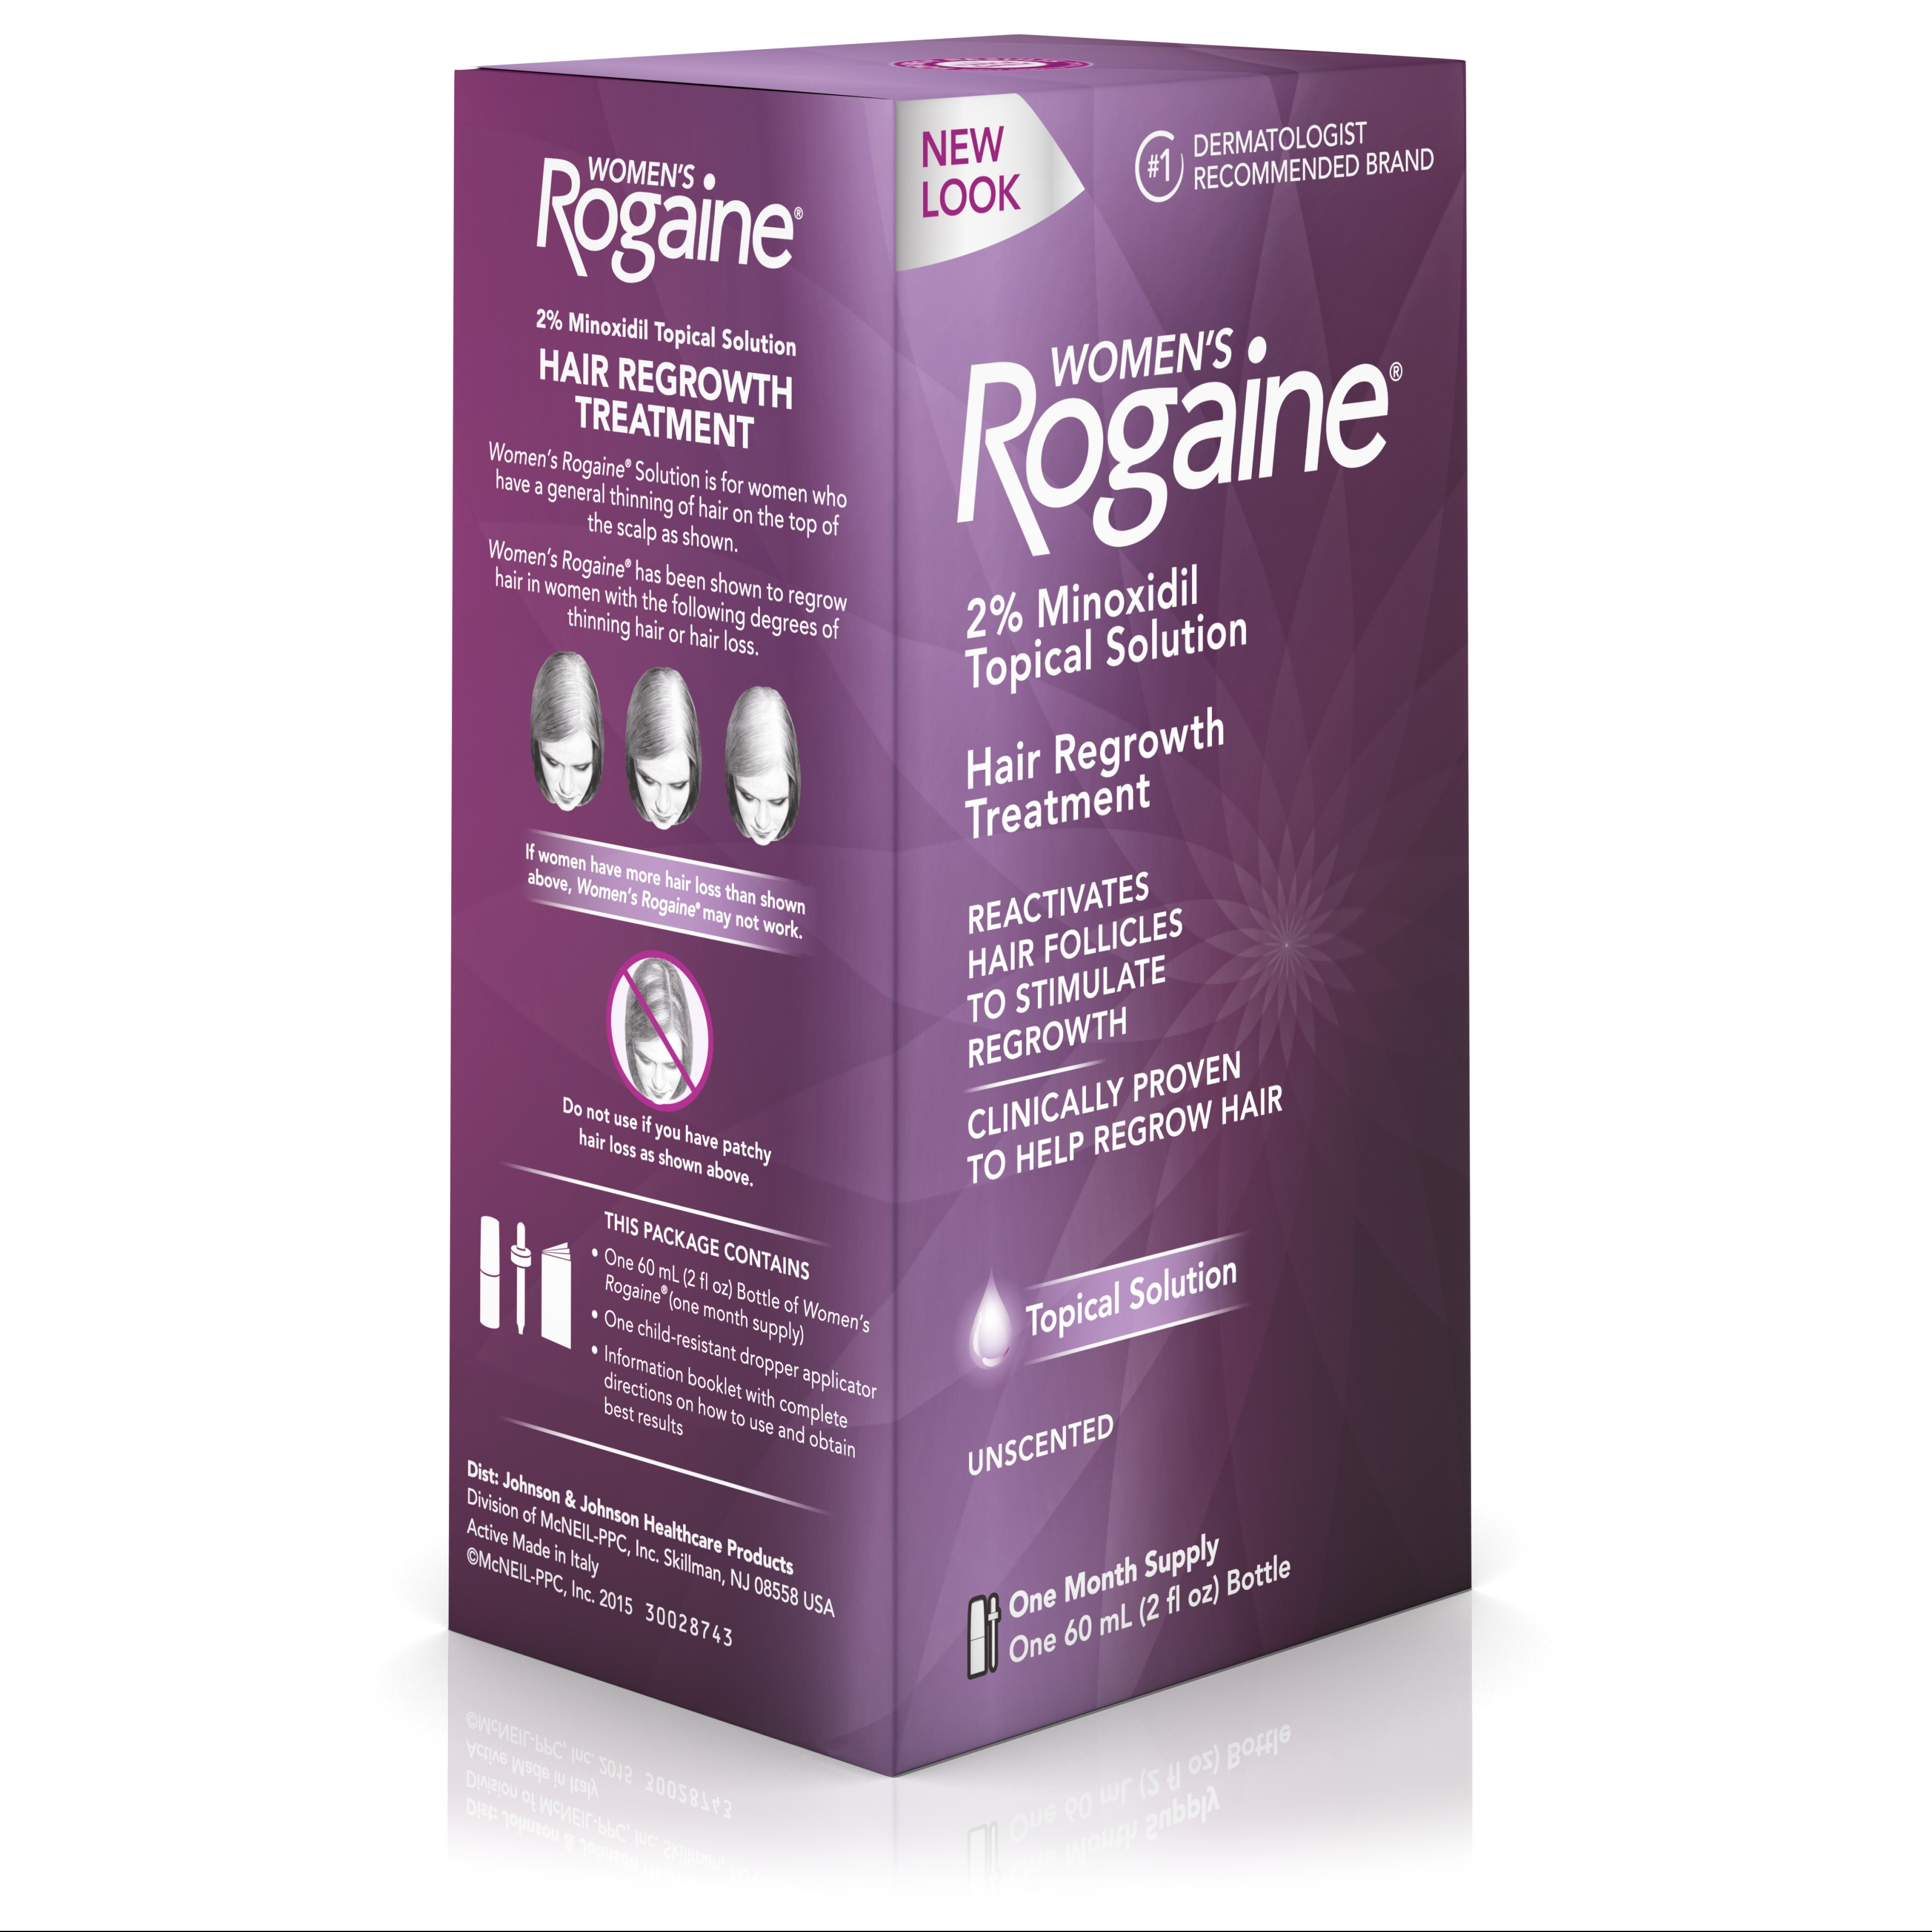 Womens Rogaine 2 Minoxidil Topical Solution 1 Month Supply